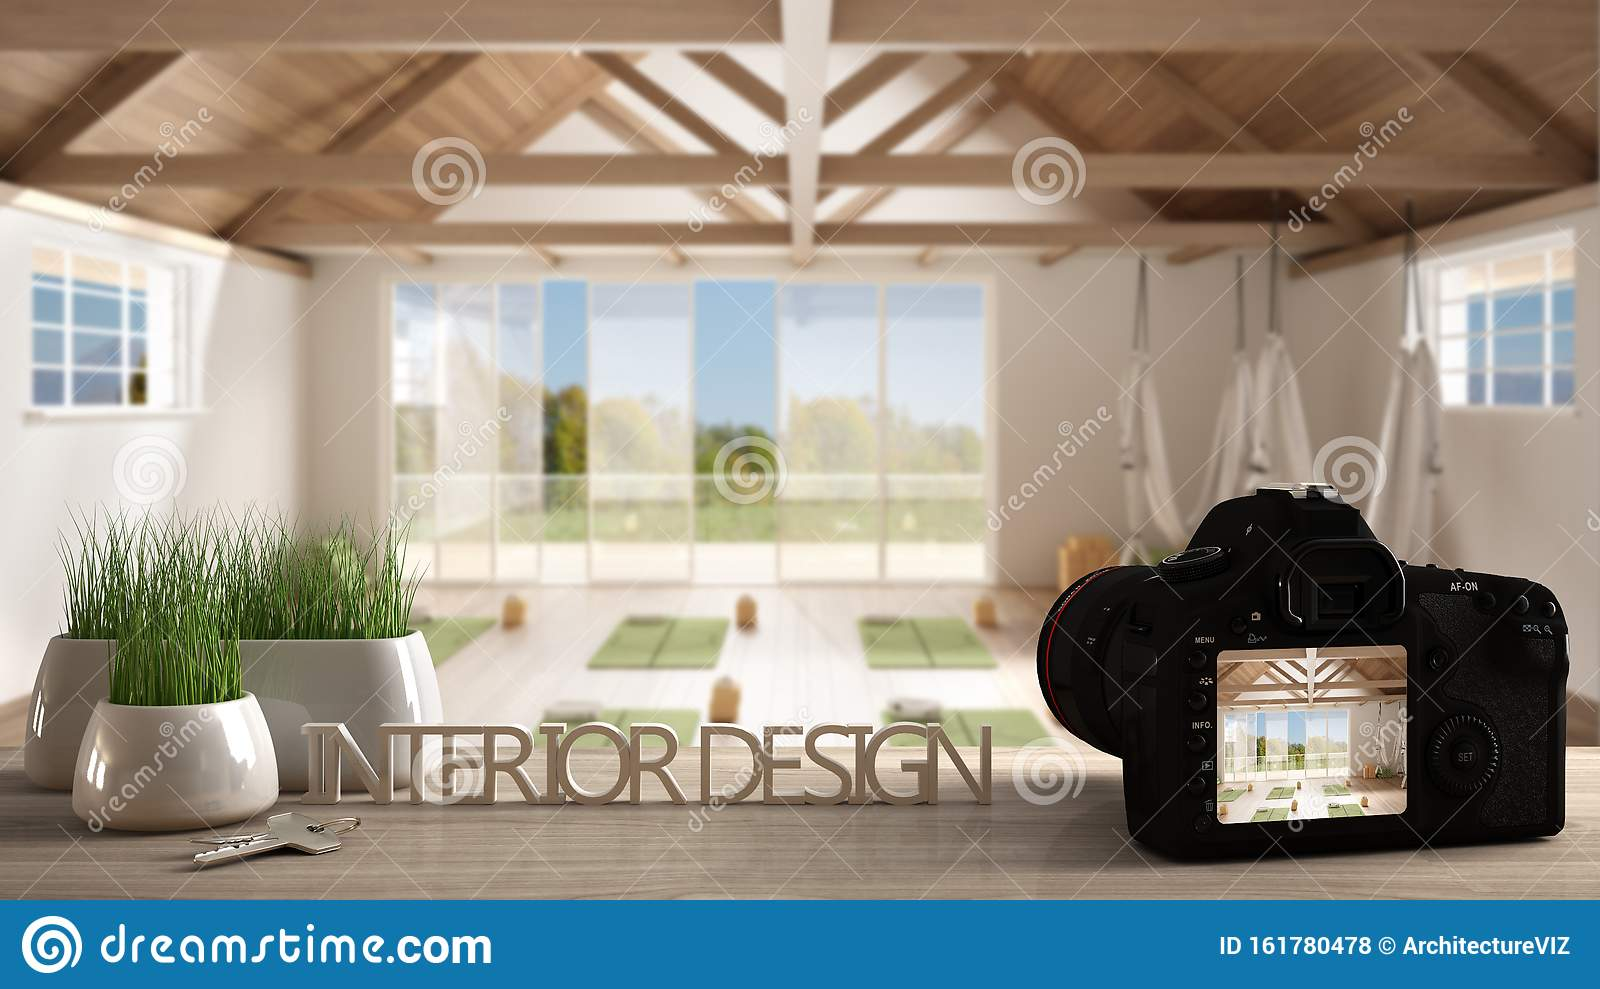 Architect Photographer Designer Desktop Concept Camera On Wooden Work Desk With Screen Showing Interior Design Project Empty Stock Photo Image Of Grass Blur 161780478